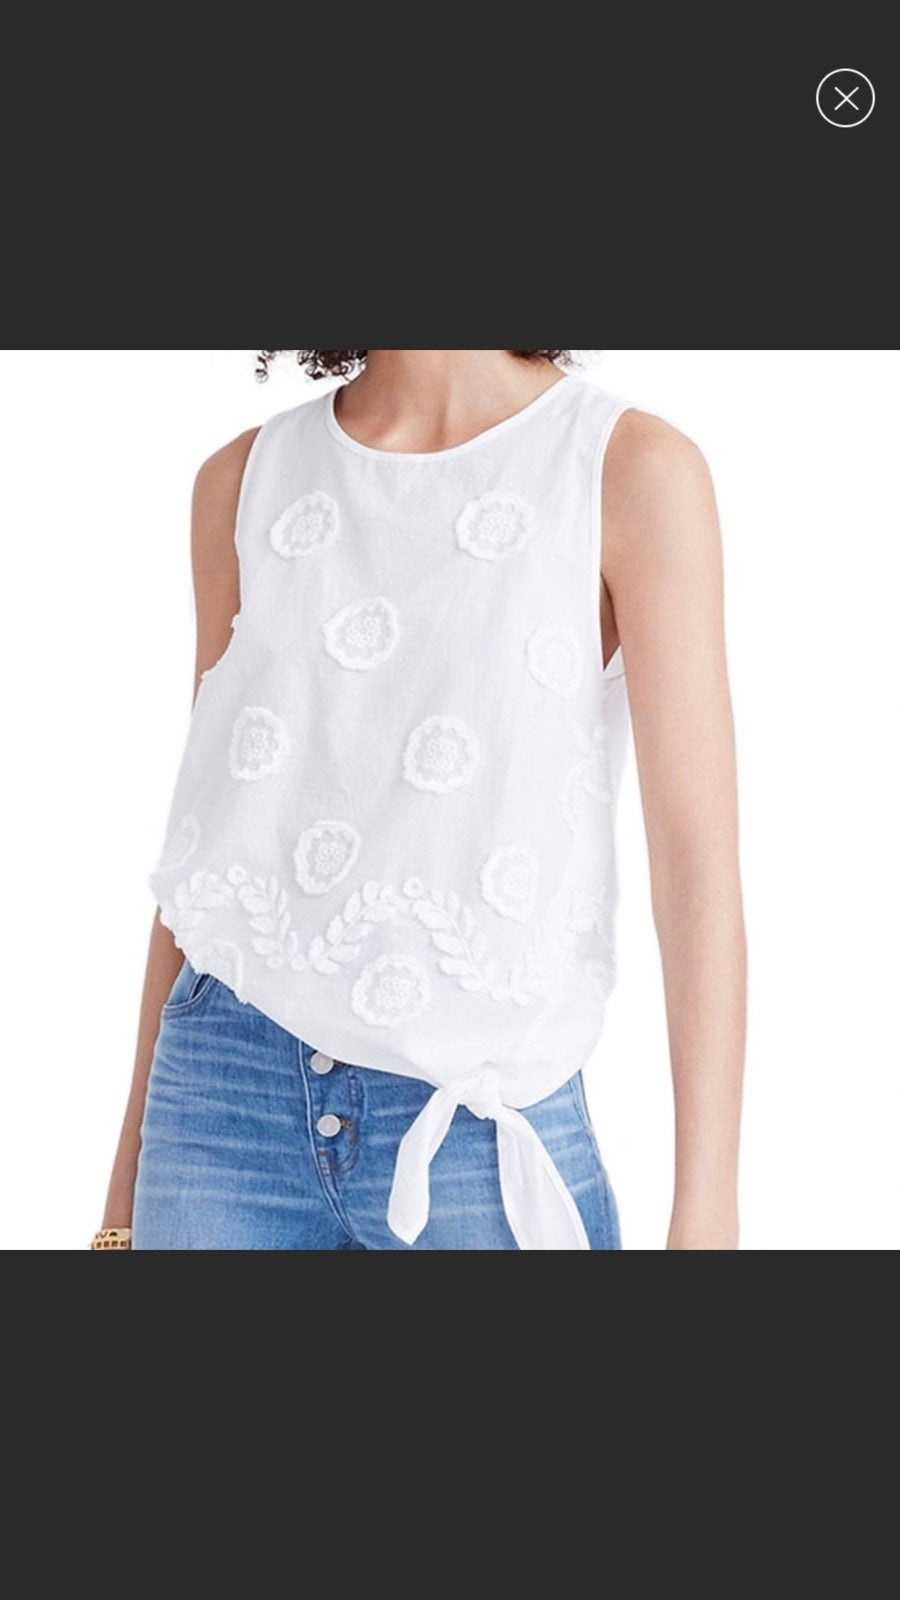 NWT Madewell Embroidered Side Tie Tank